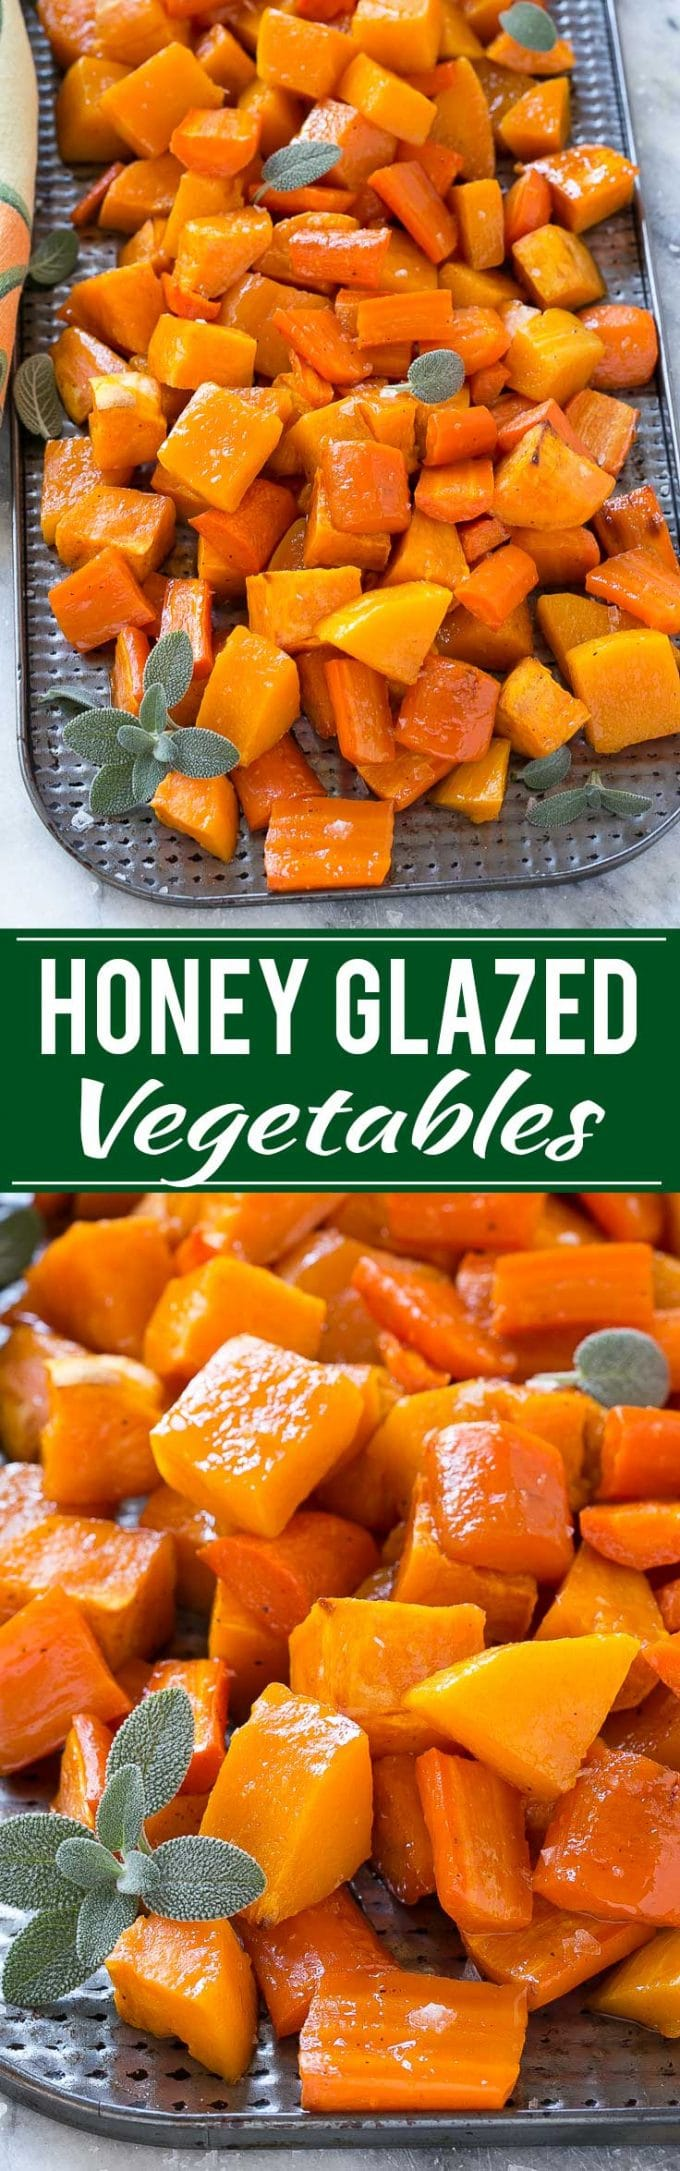 Oven Roasted Butternut Squash with Root Vegetables and Honey Recipe | Roasted Vegetables and Honey | Roasted Butternut Squash with Honey | Best Roasted Butternut Squash | Best Roasted Vegetables | Honey Glazed Vegetables